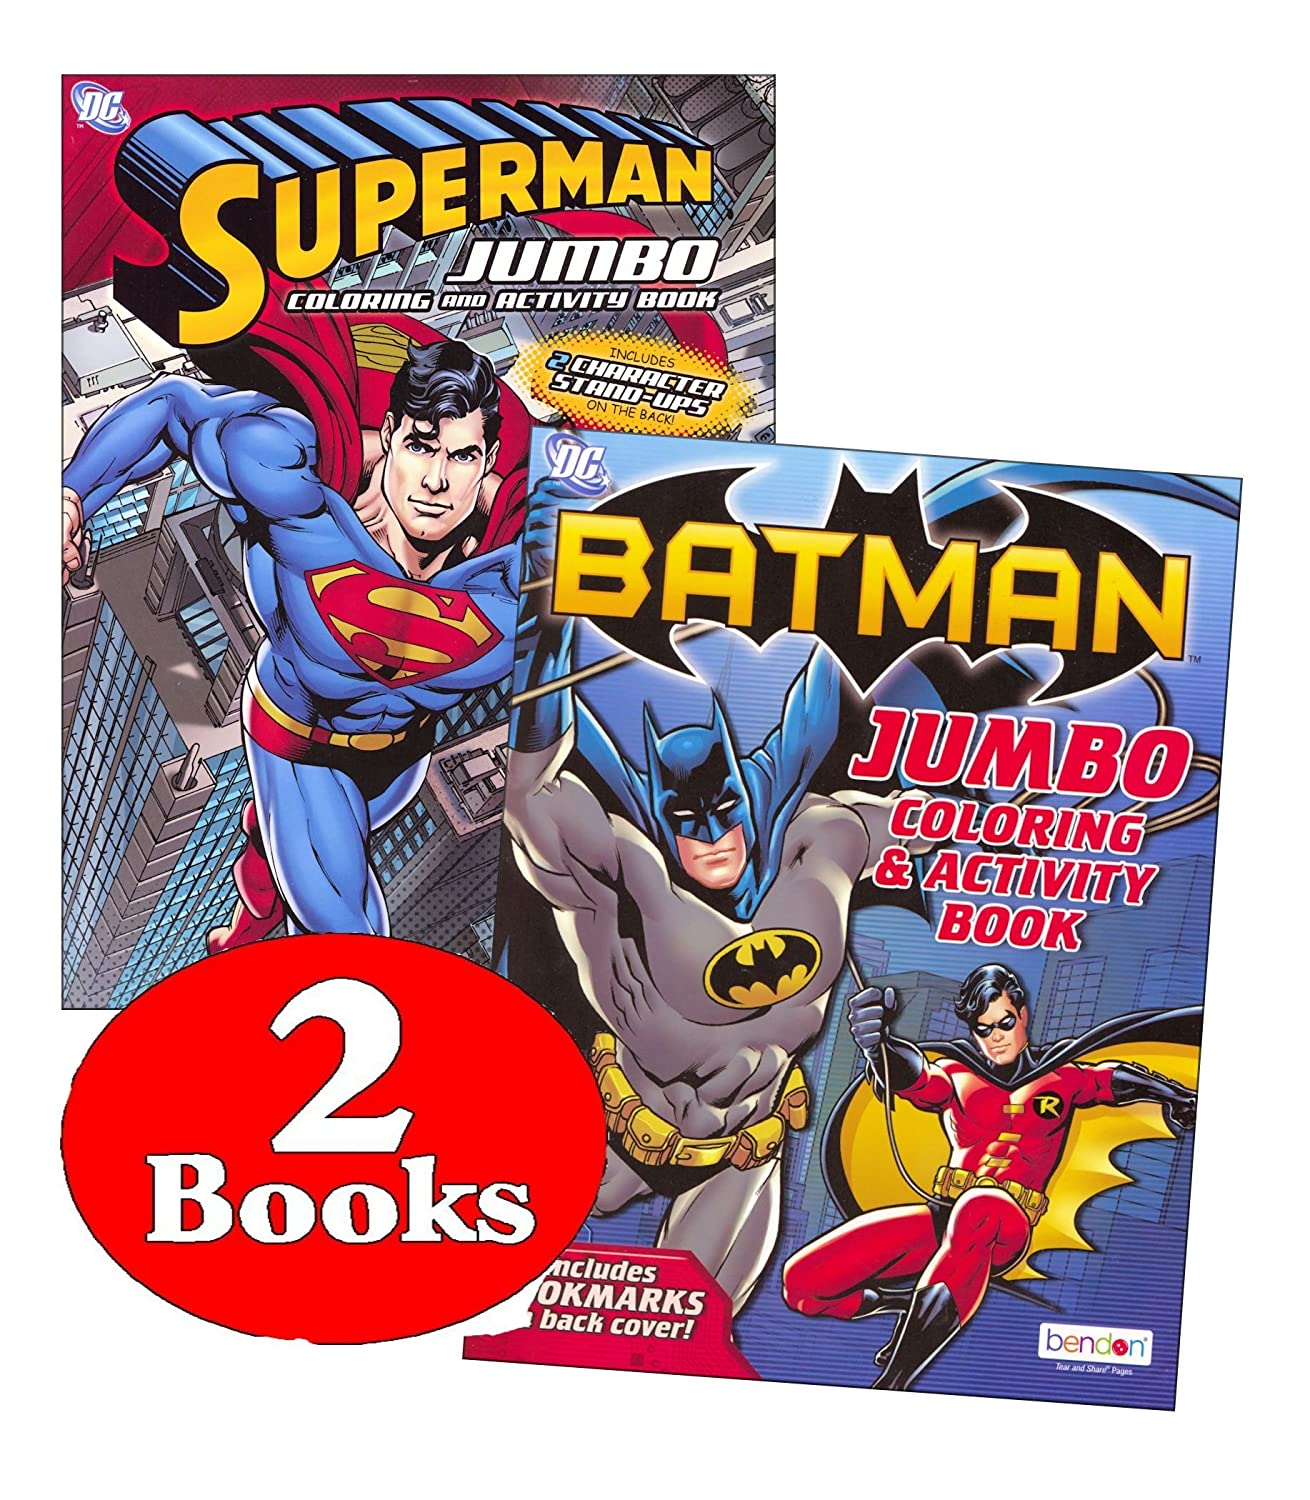 UP 2-Pack Batman Jumbo Coloring /& Activity Book 96 Pages